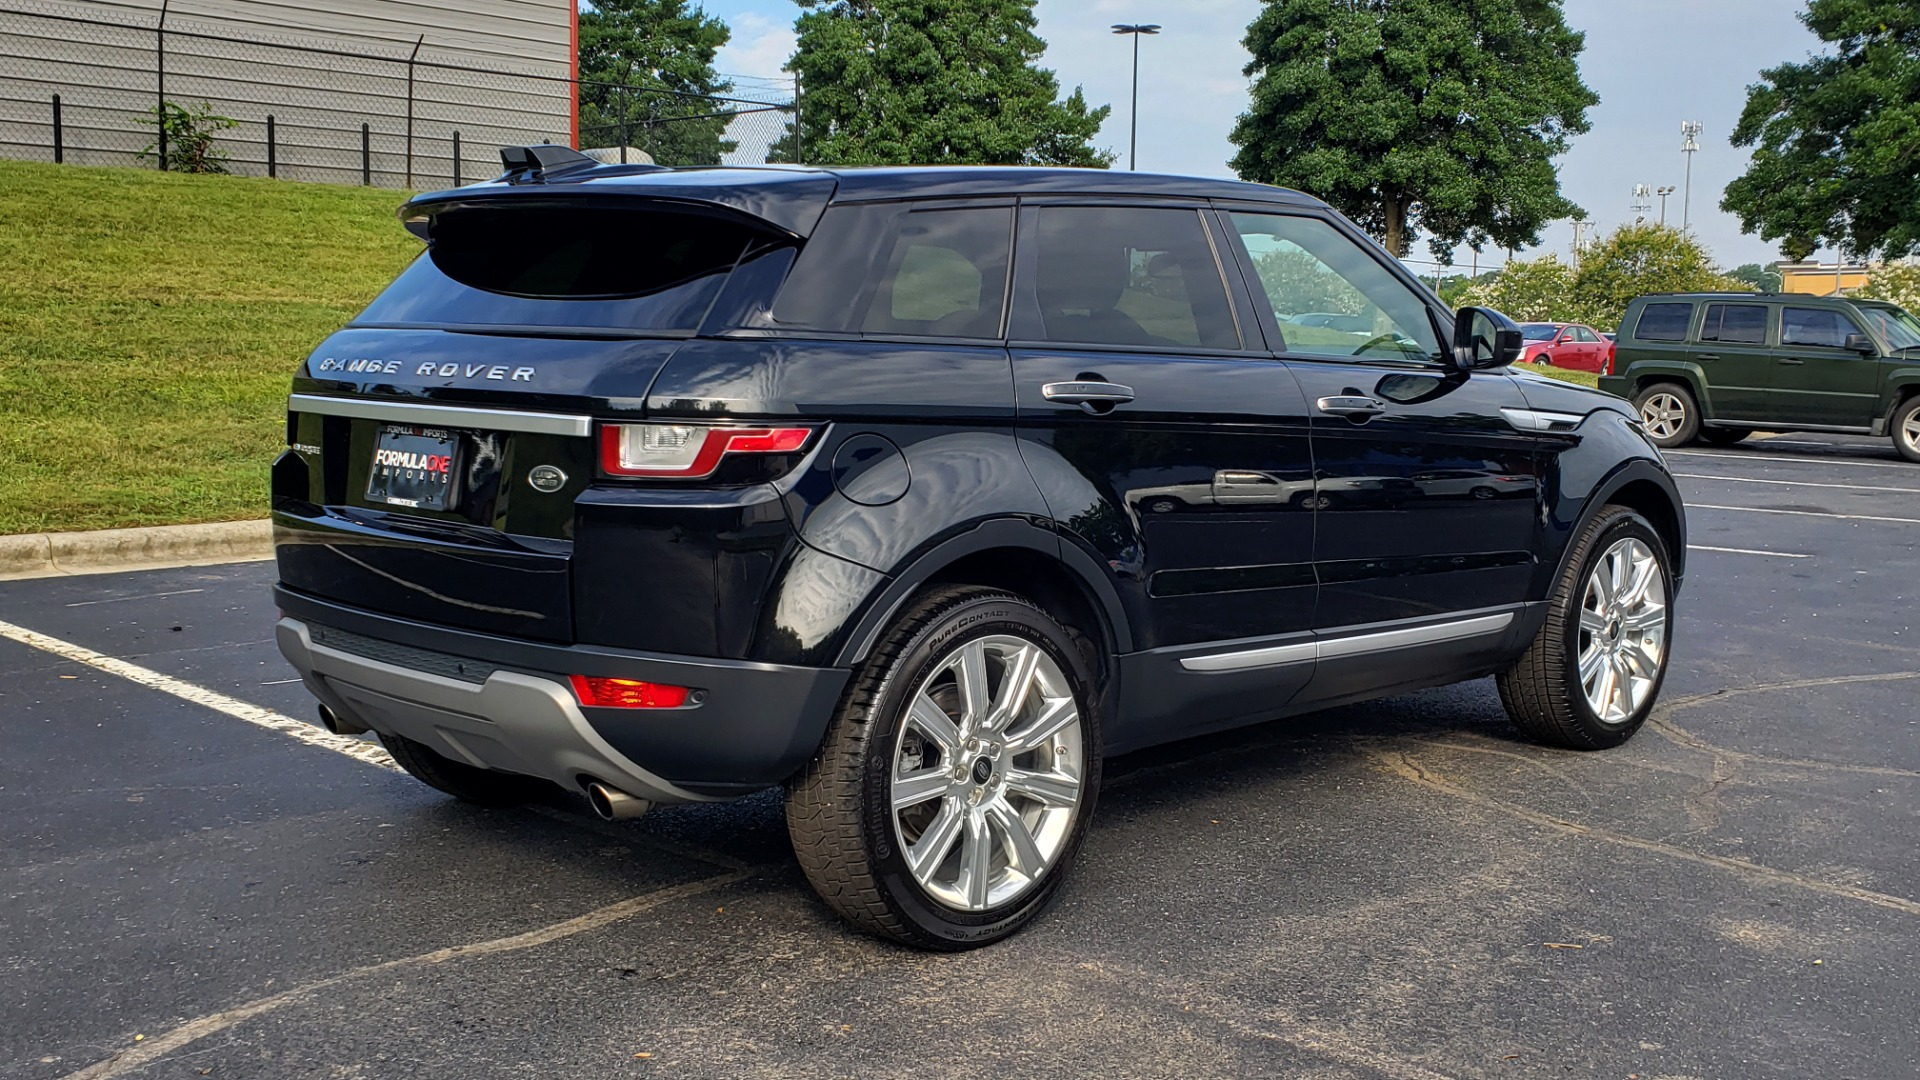 Used 2016 Land Rover RANGE ROVER EVOQUE HSE / AWD / NAV / MERIDIAN / PANO-ROOF / REARVIEW for sale Sold at Formula Imports in Charlotte NC 28227 6